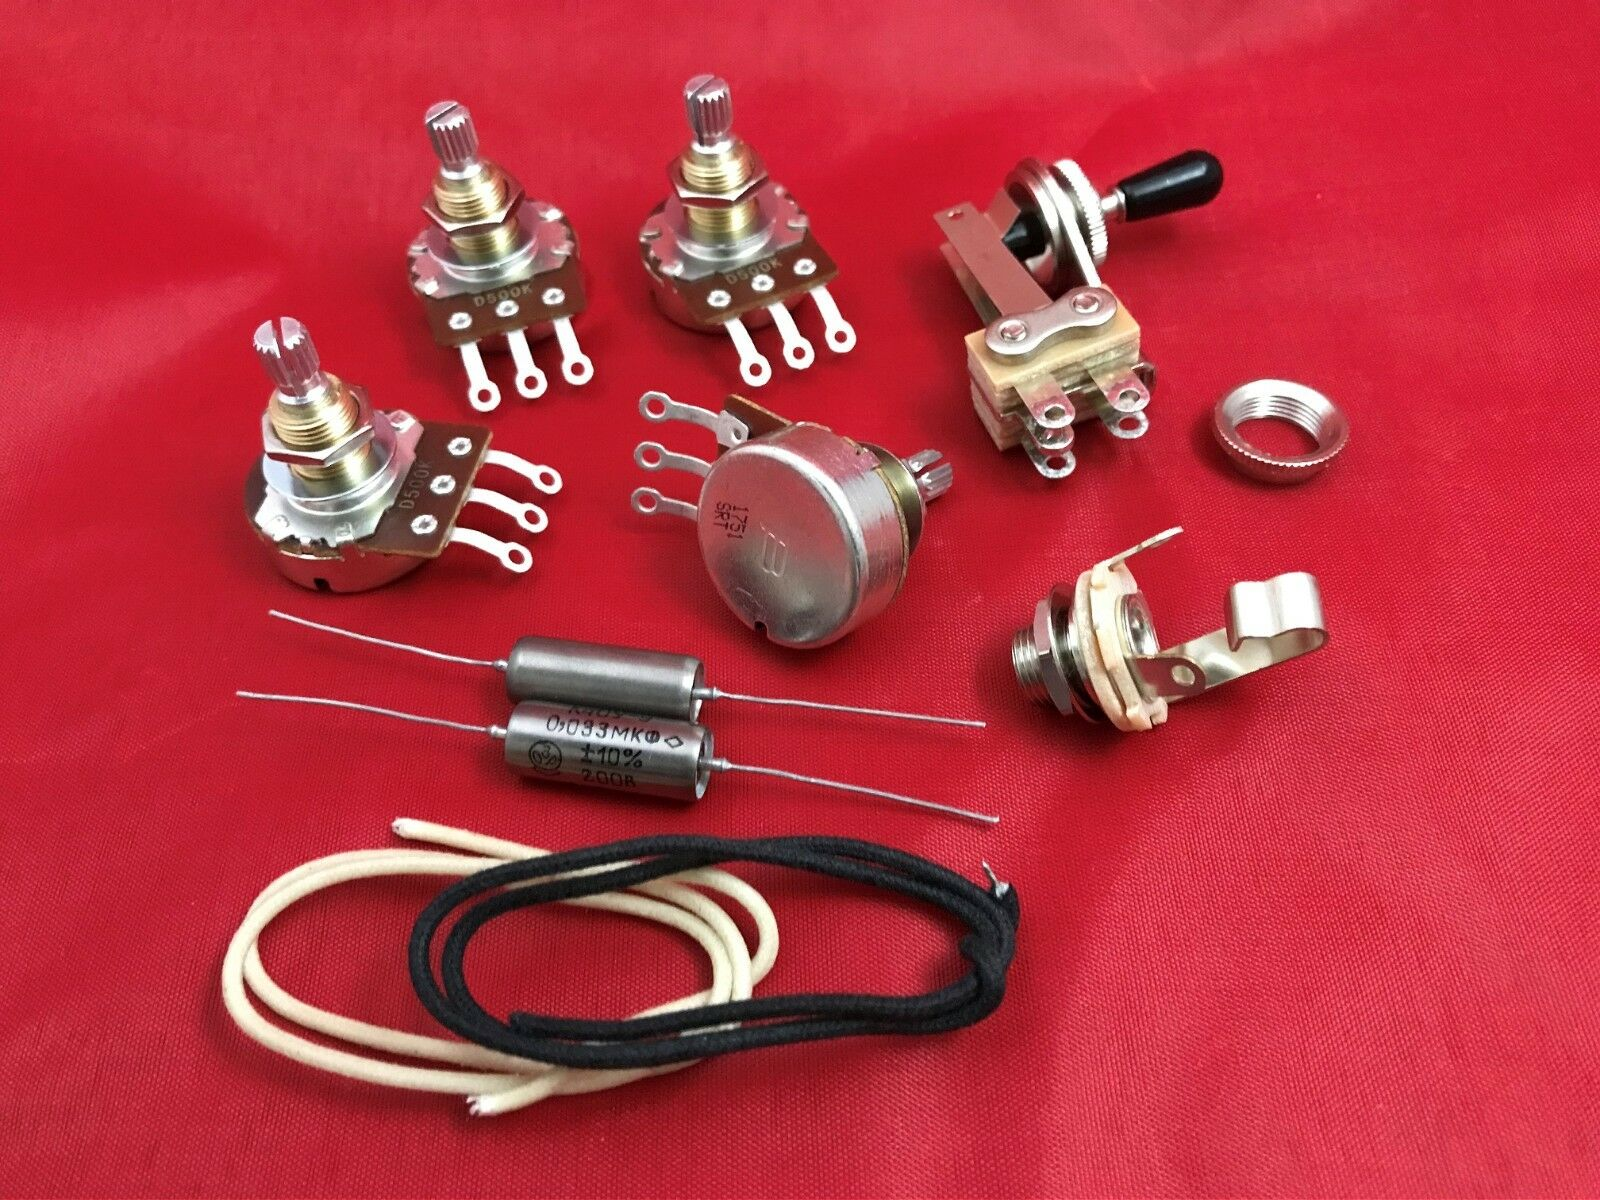 Guitar Upgrade Wiring Kit Pots PIO Tone Caps Switch Fits Gibson Epiphone SG